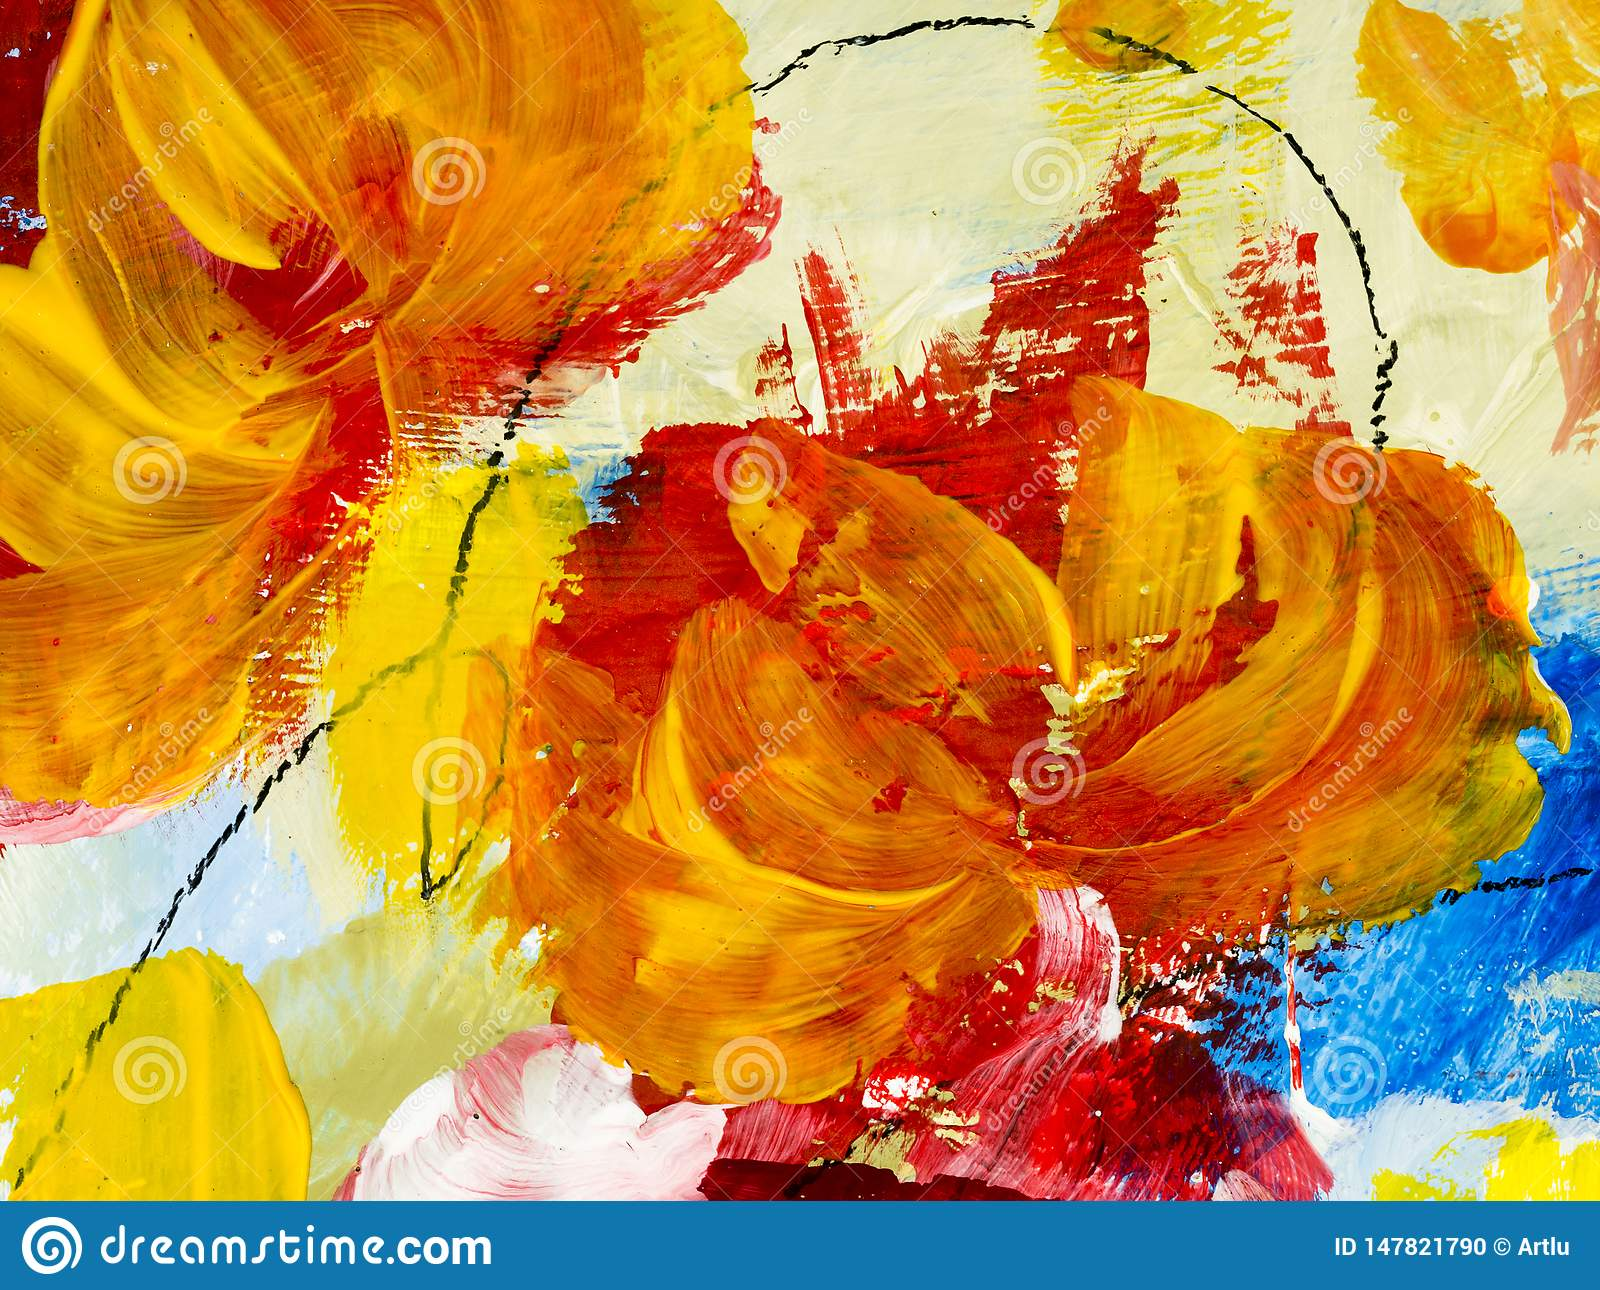 Abstract Flowers Of Acrylic Painting On Canvas Stock